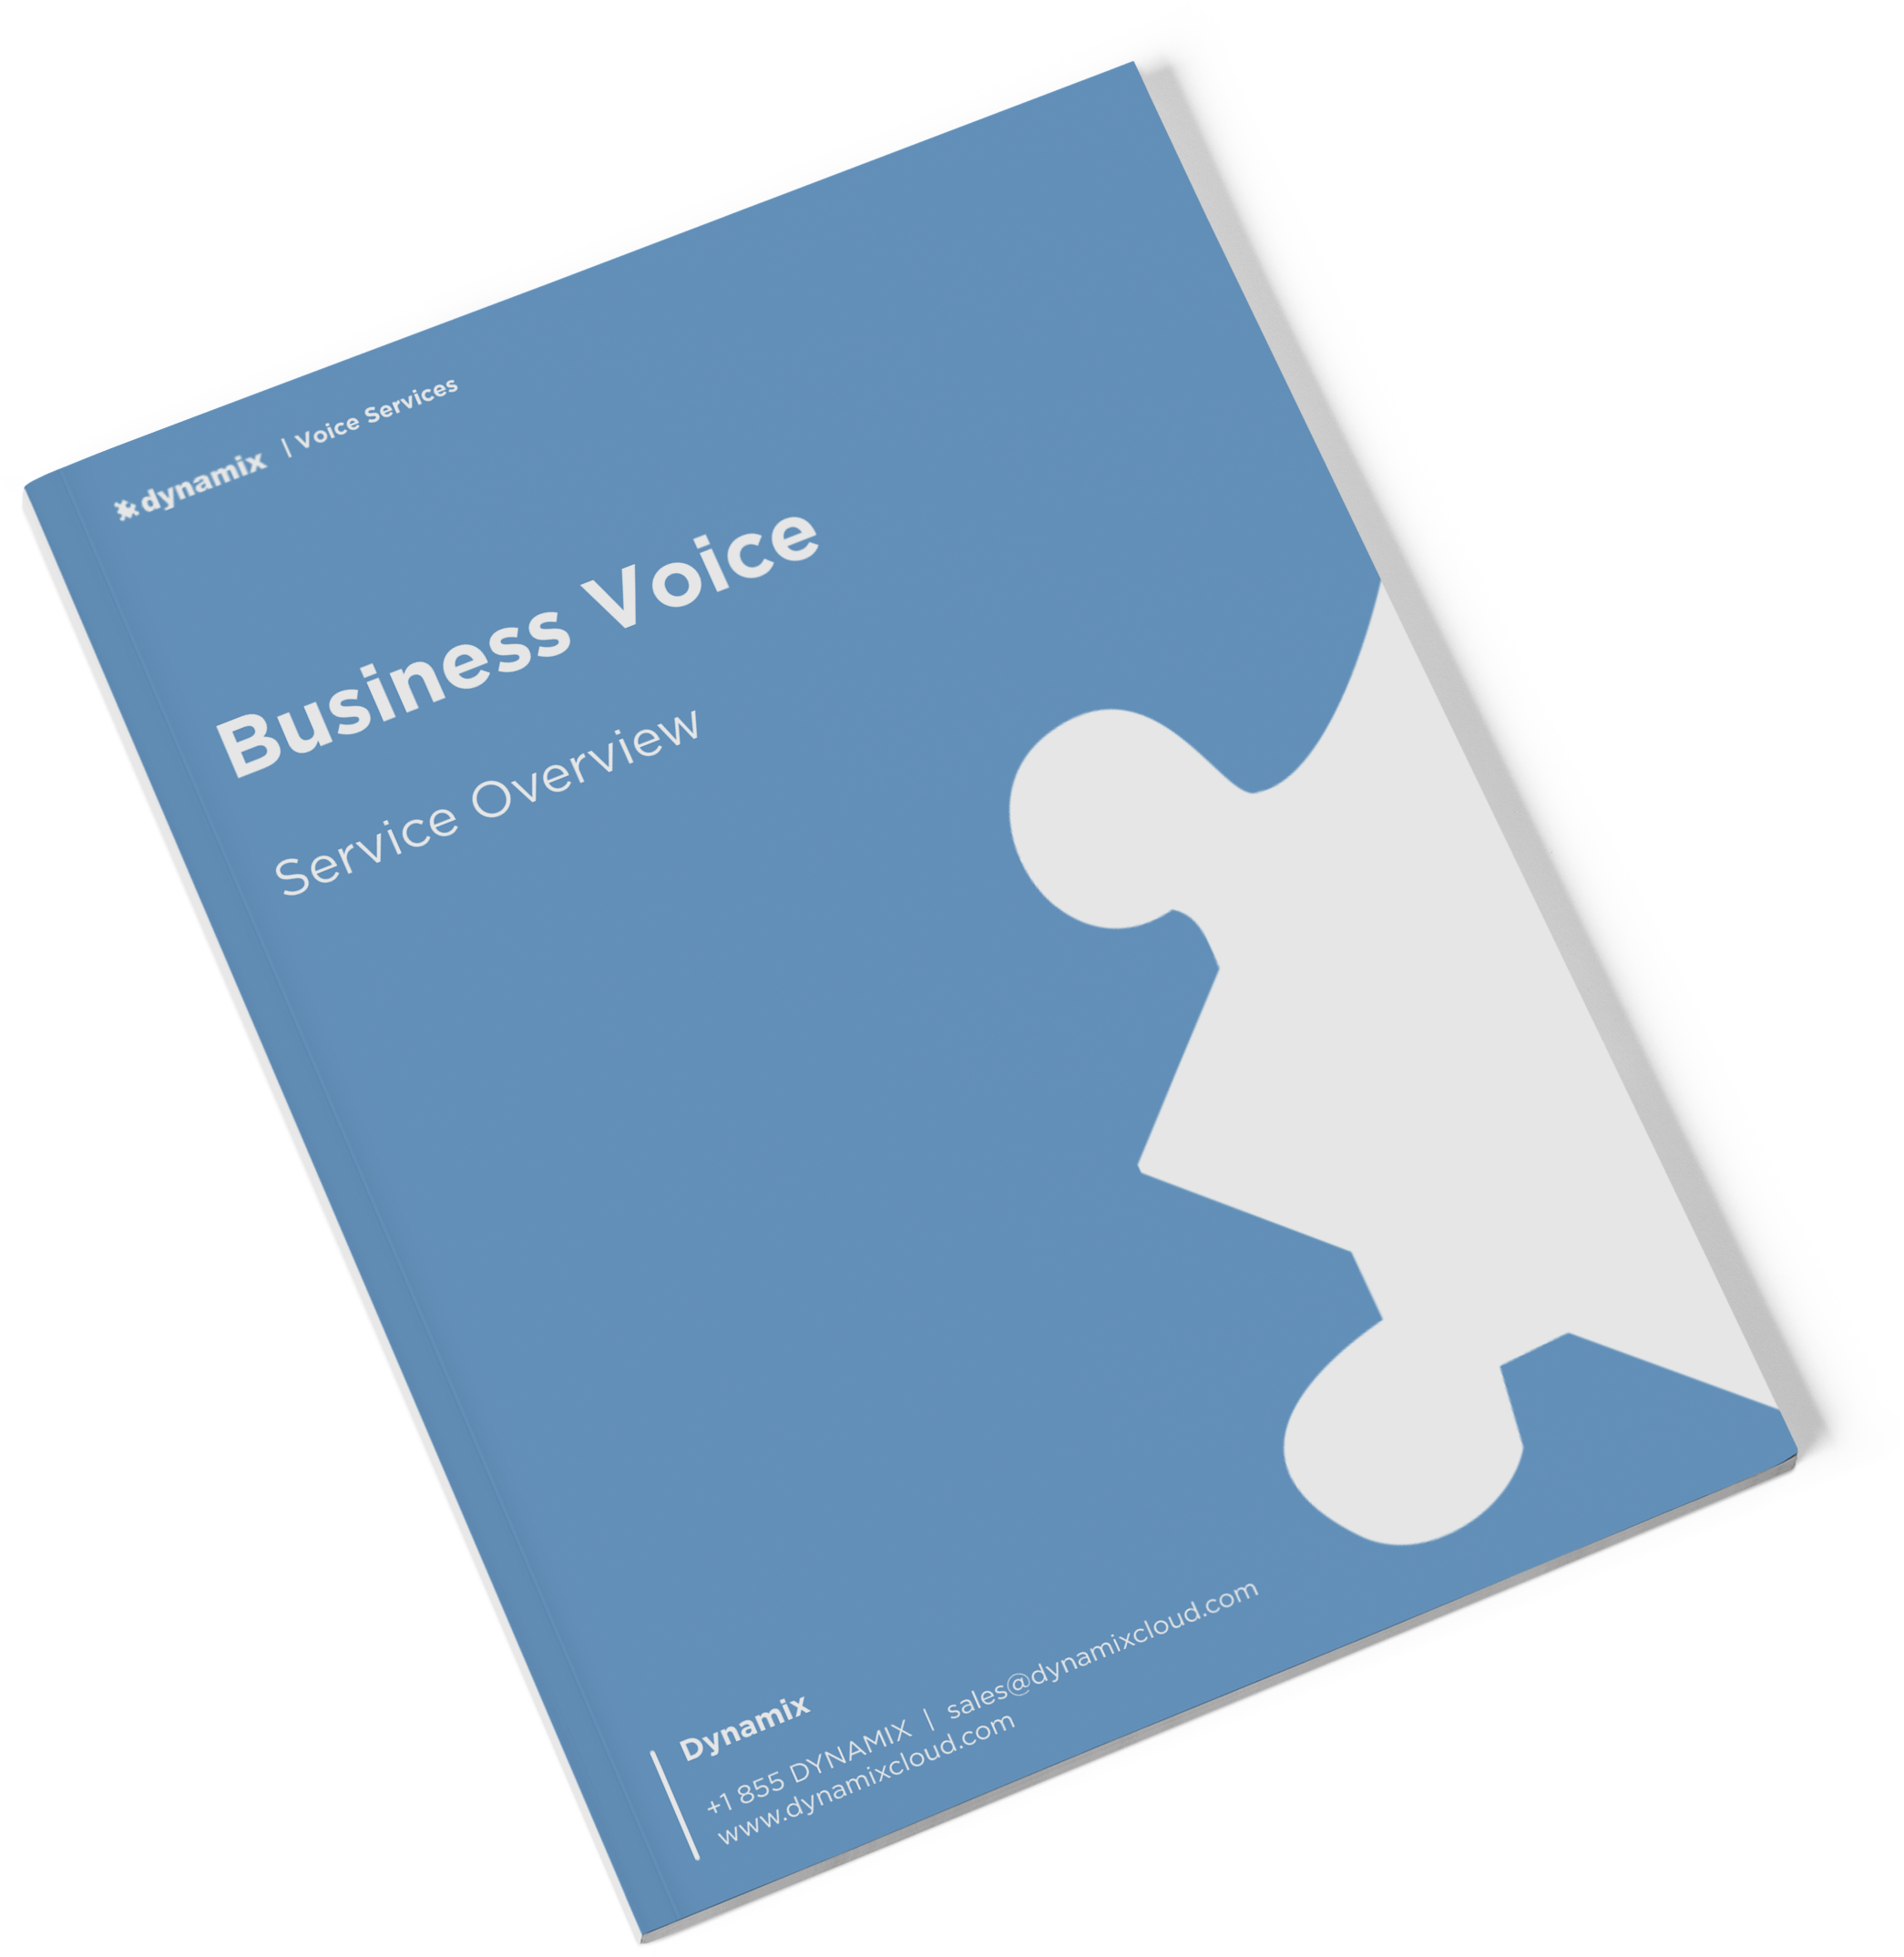 business-voice-product-brochure